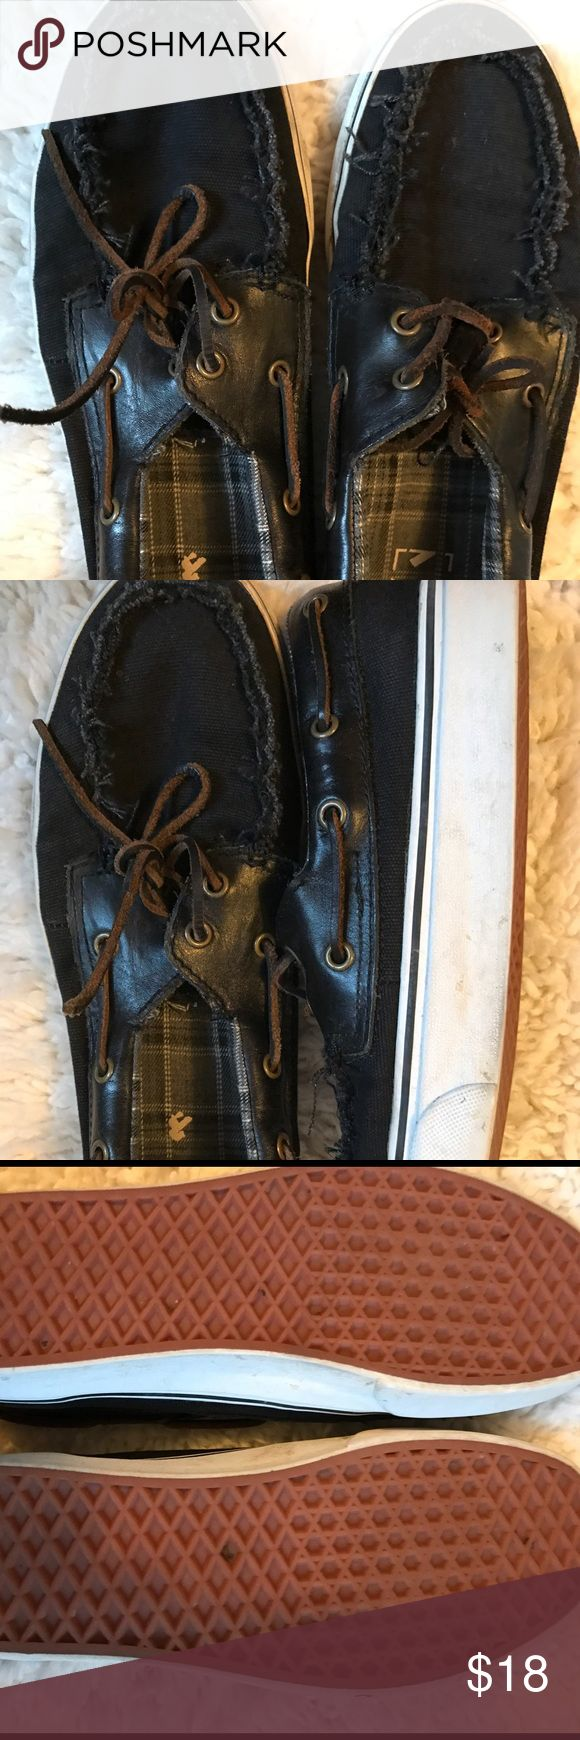 Men's vans boat shoes Good condition vans.  Worn but you can tell by the soles that they are only worn a few times. Vans Shoes Boat Shoes